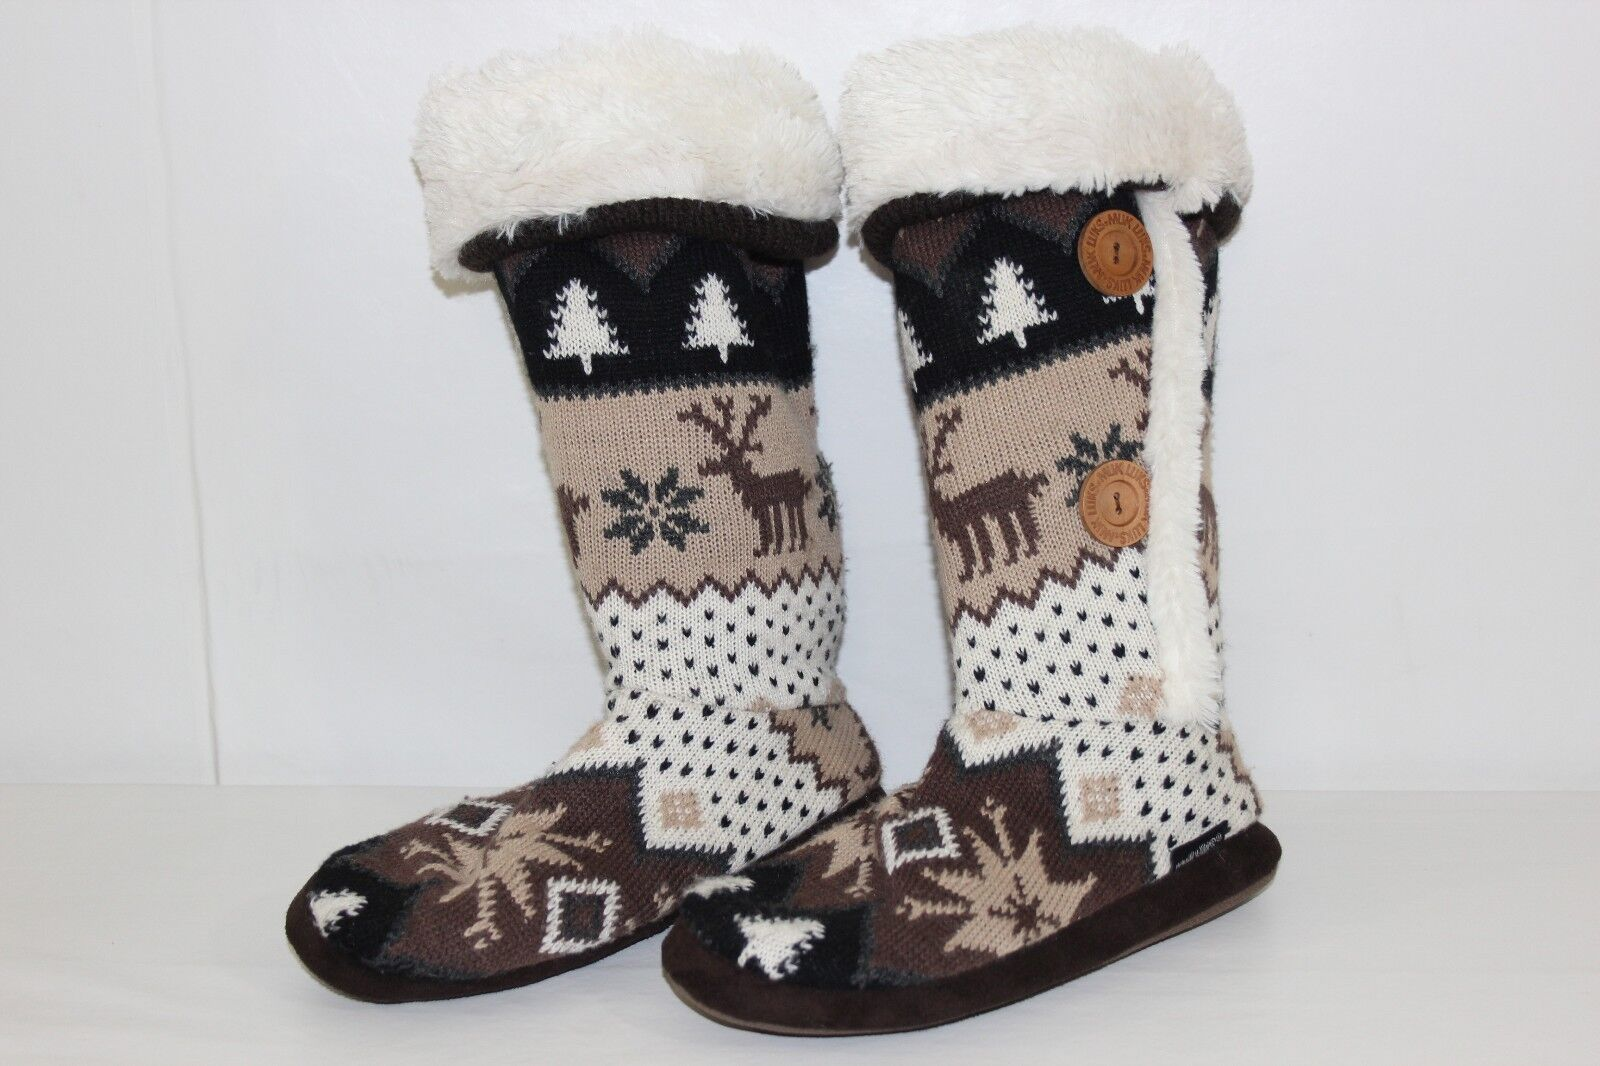 FREE SHIPPING Muk Luks Womens Sz 7-7.5 Brown White Knit Slip On Soft Sided Boots